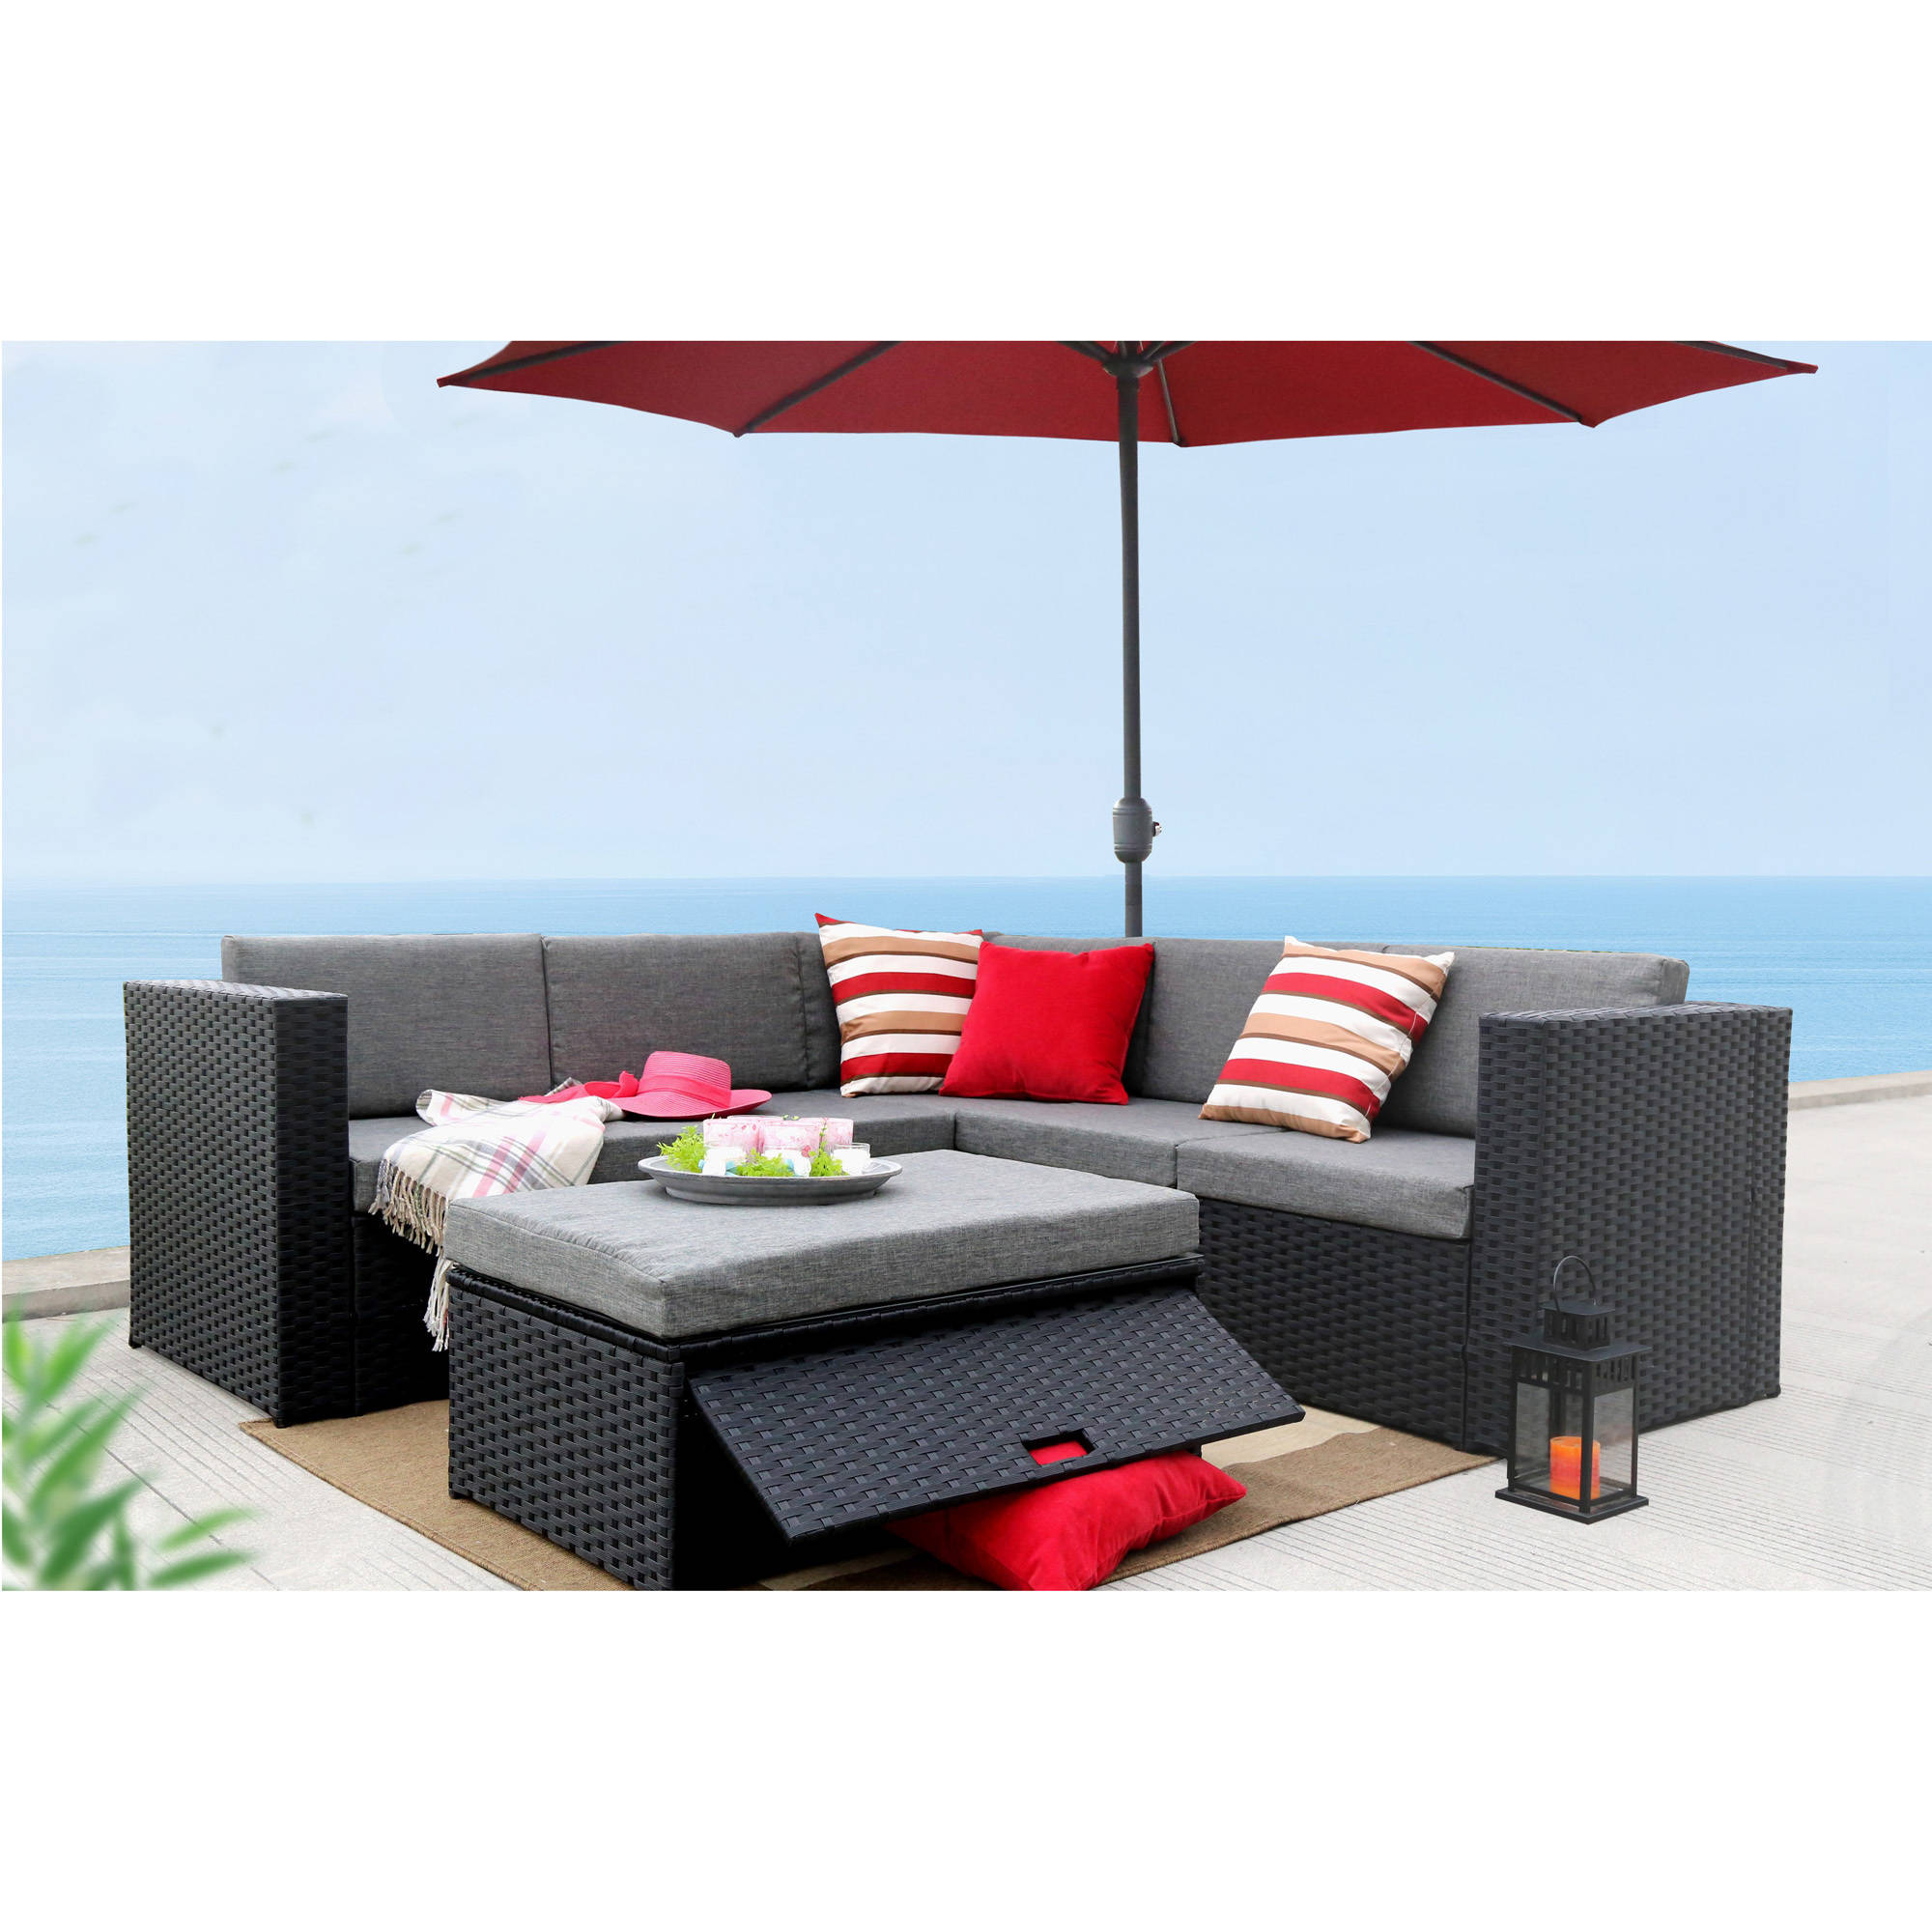 Baner Garden Outdoor Furniture Complete Patio PE Wicker Rattan Garden  Corner Sofa Couch Set, Black